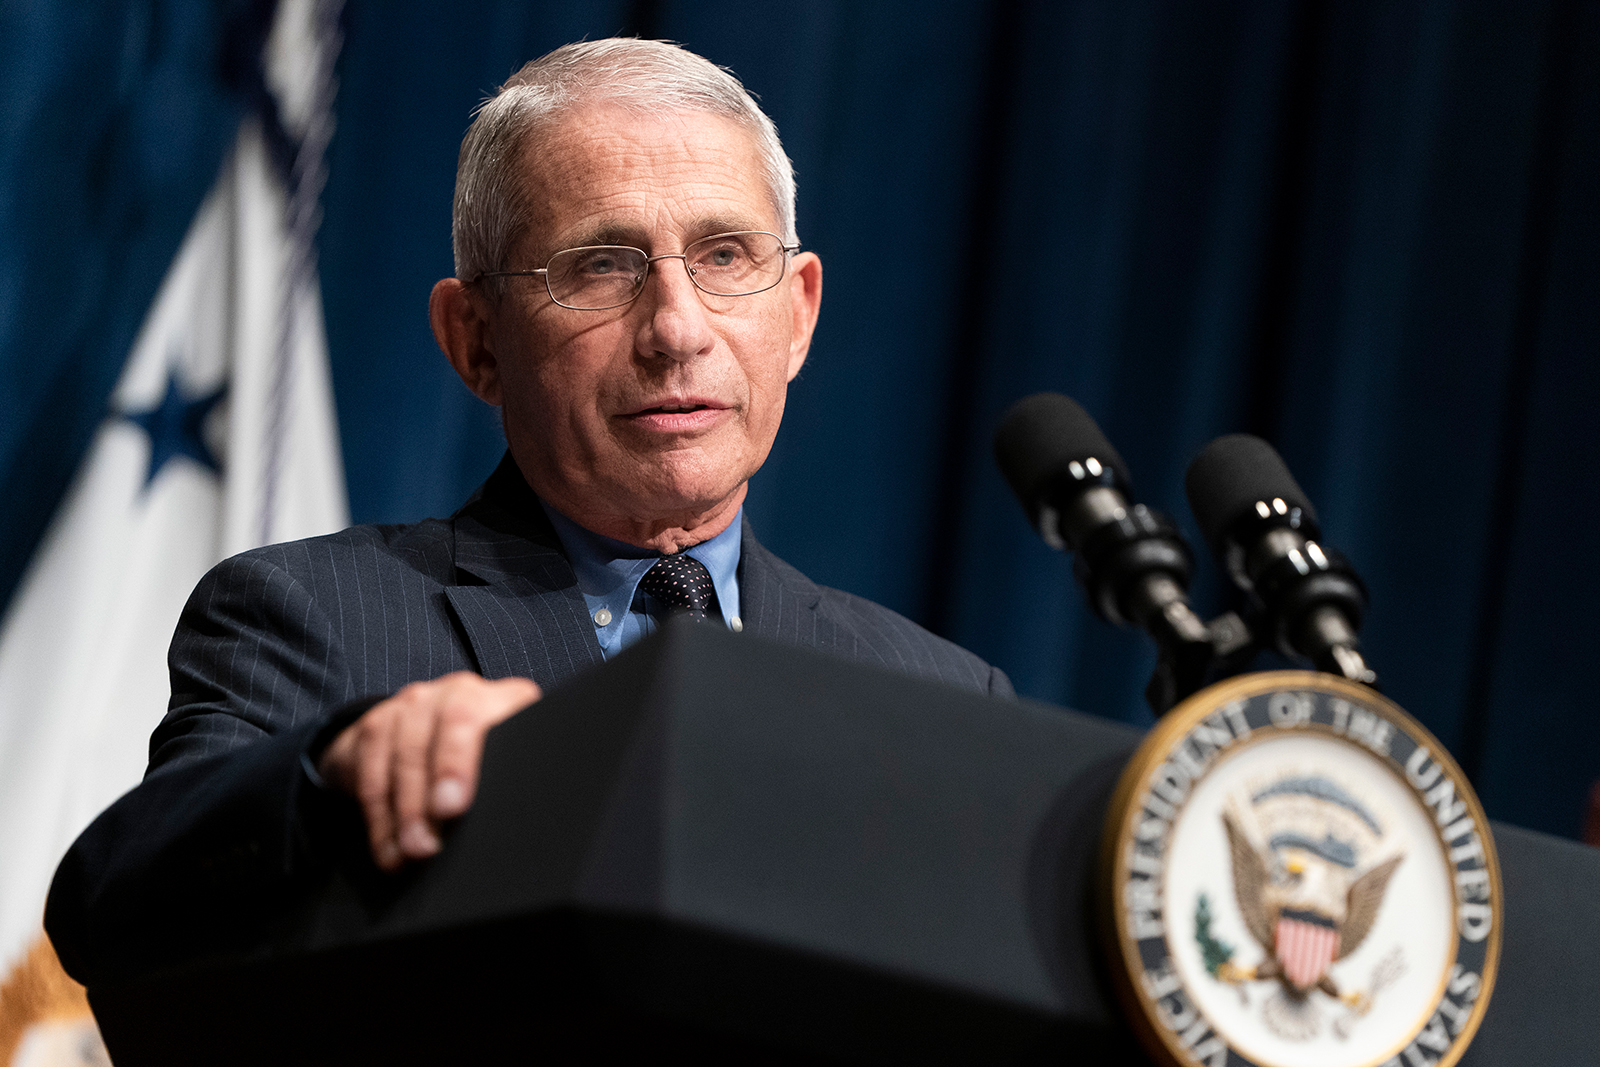 Anthony Fauci speaks after a White House Coronavirus Task Force briefing on June 26 in Washington.